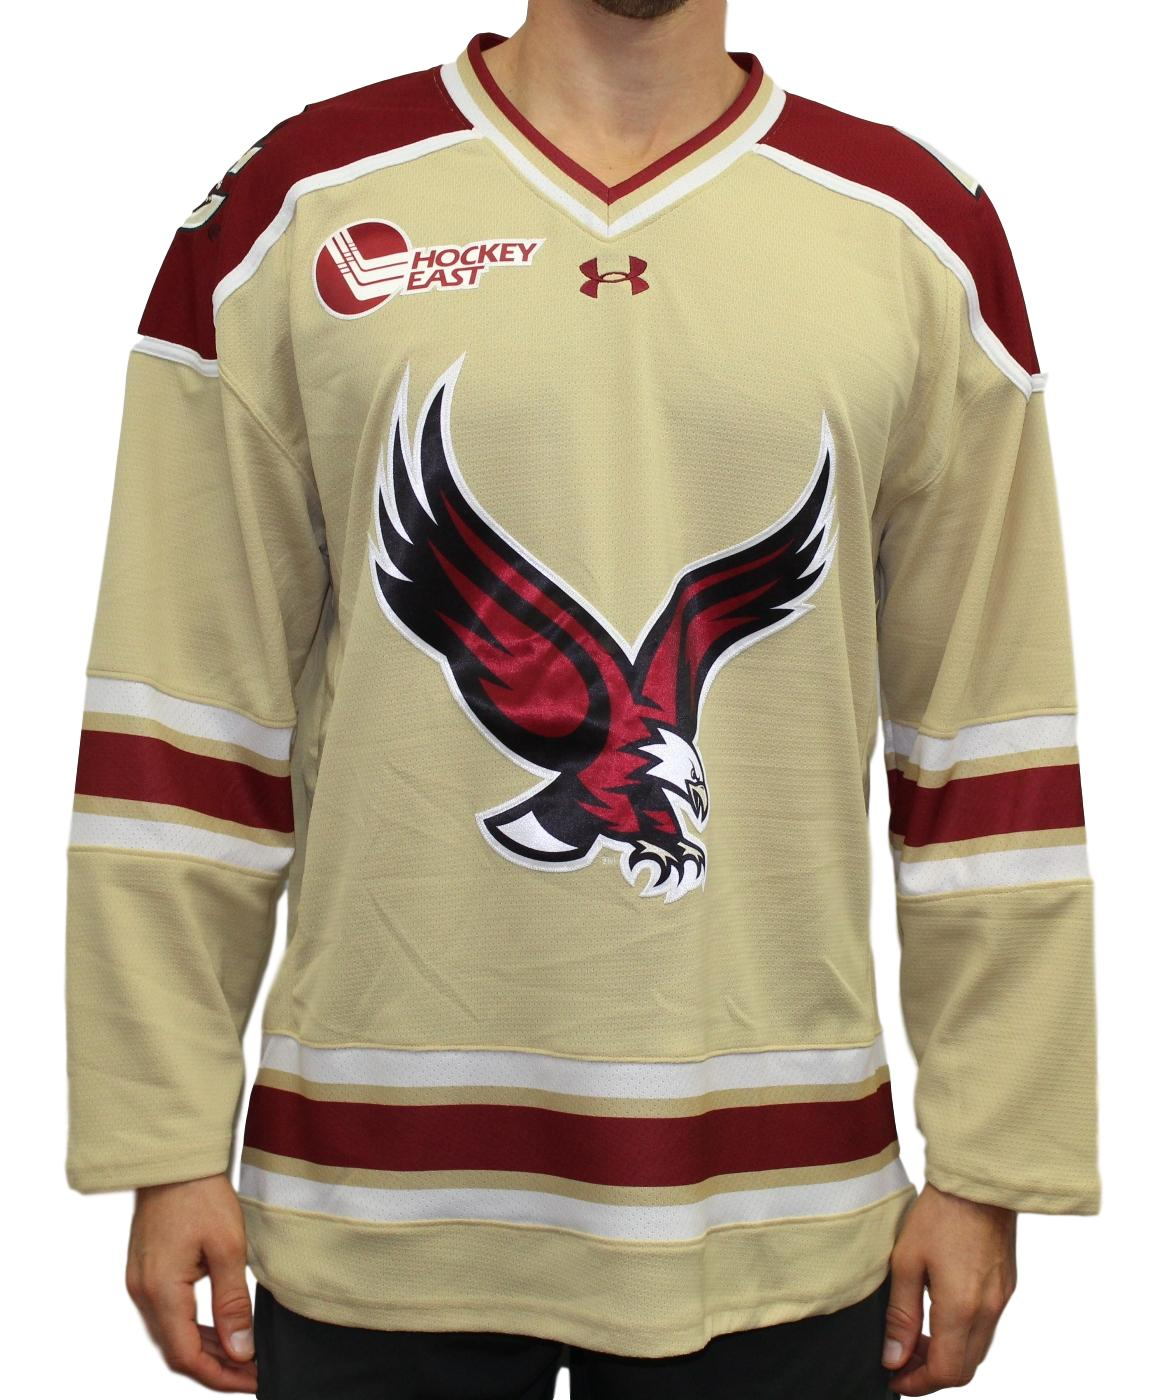 80773ad0a Boston College Eagles Under Armour NCAA Men's Replica Hockey Jersey - Gold